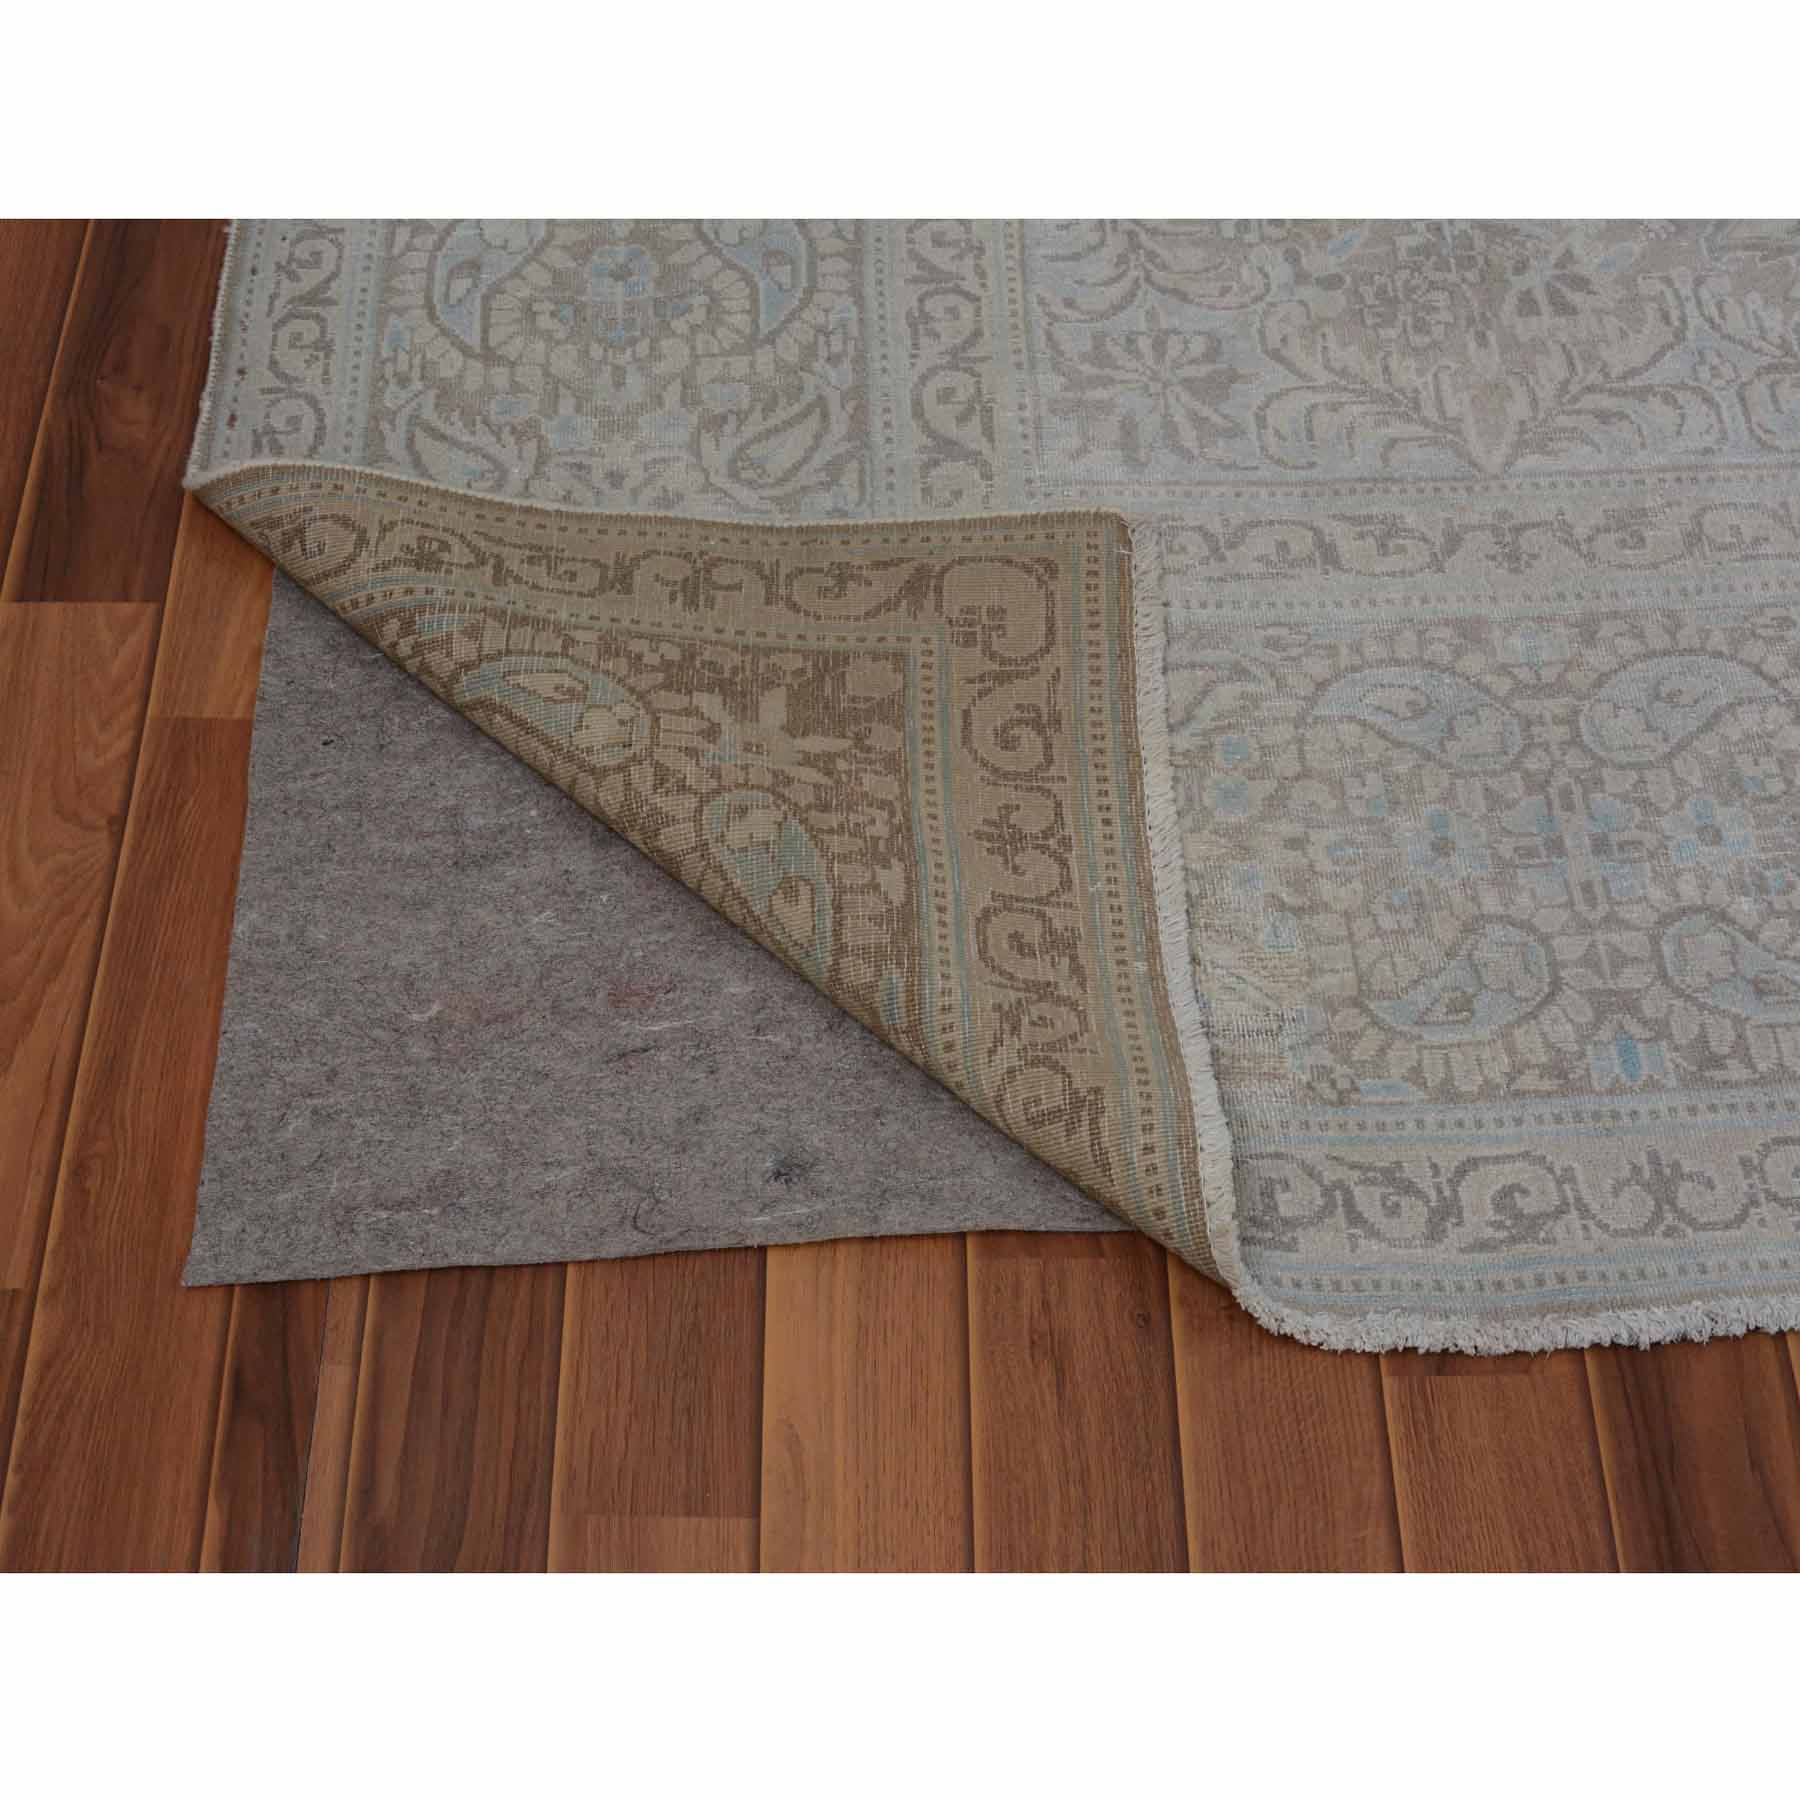 Overdyed-Vintage-Hand-Knotted-Rug-287025